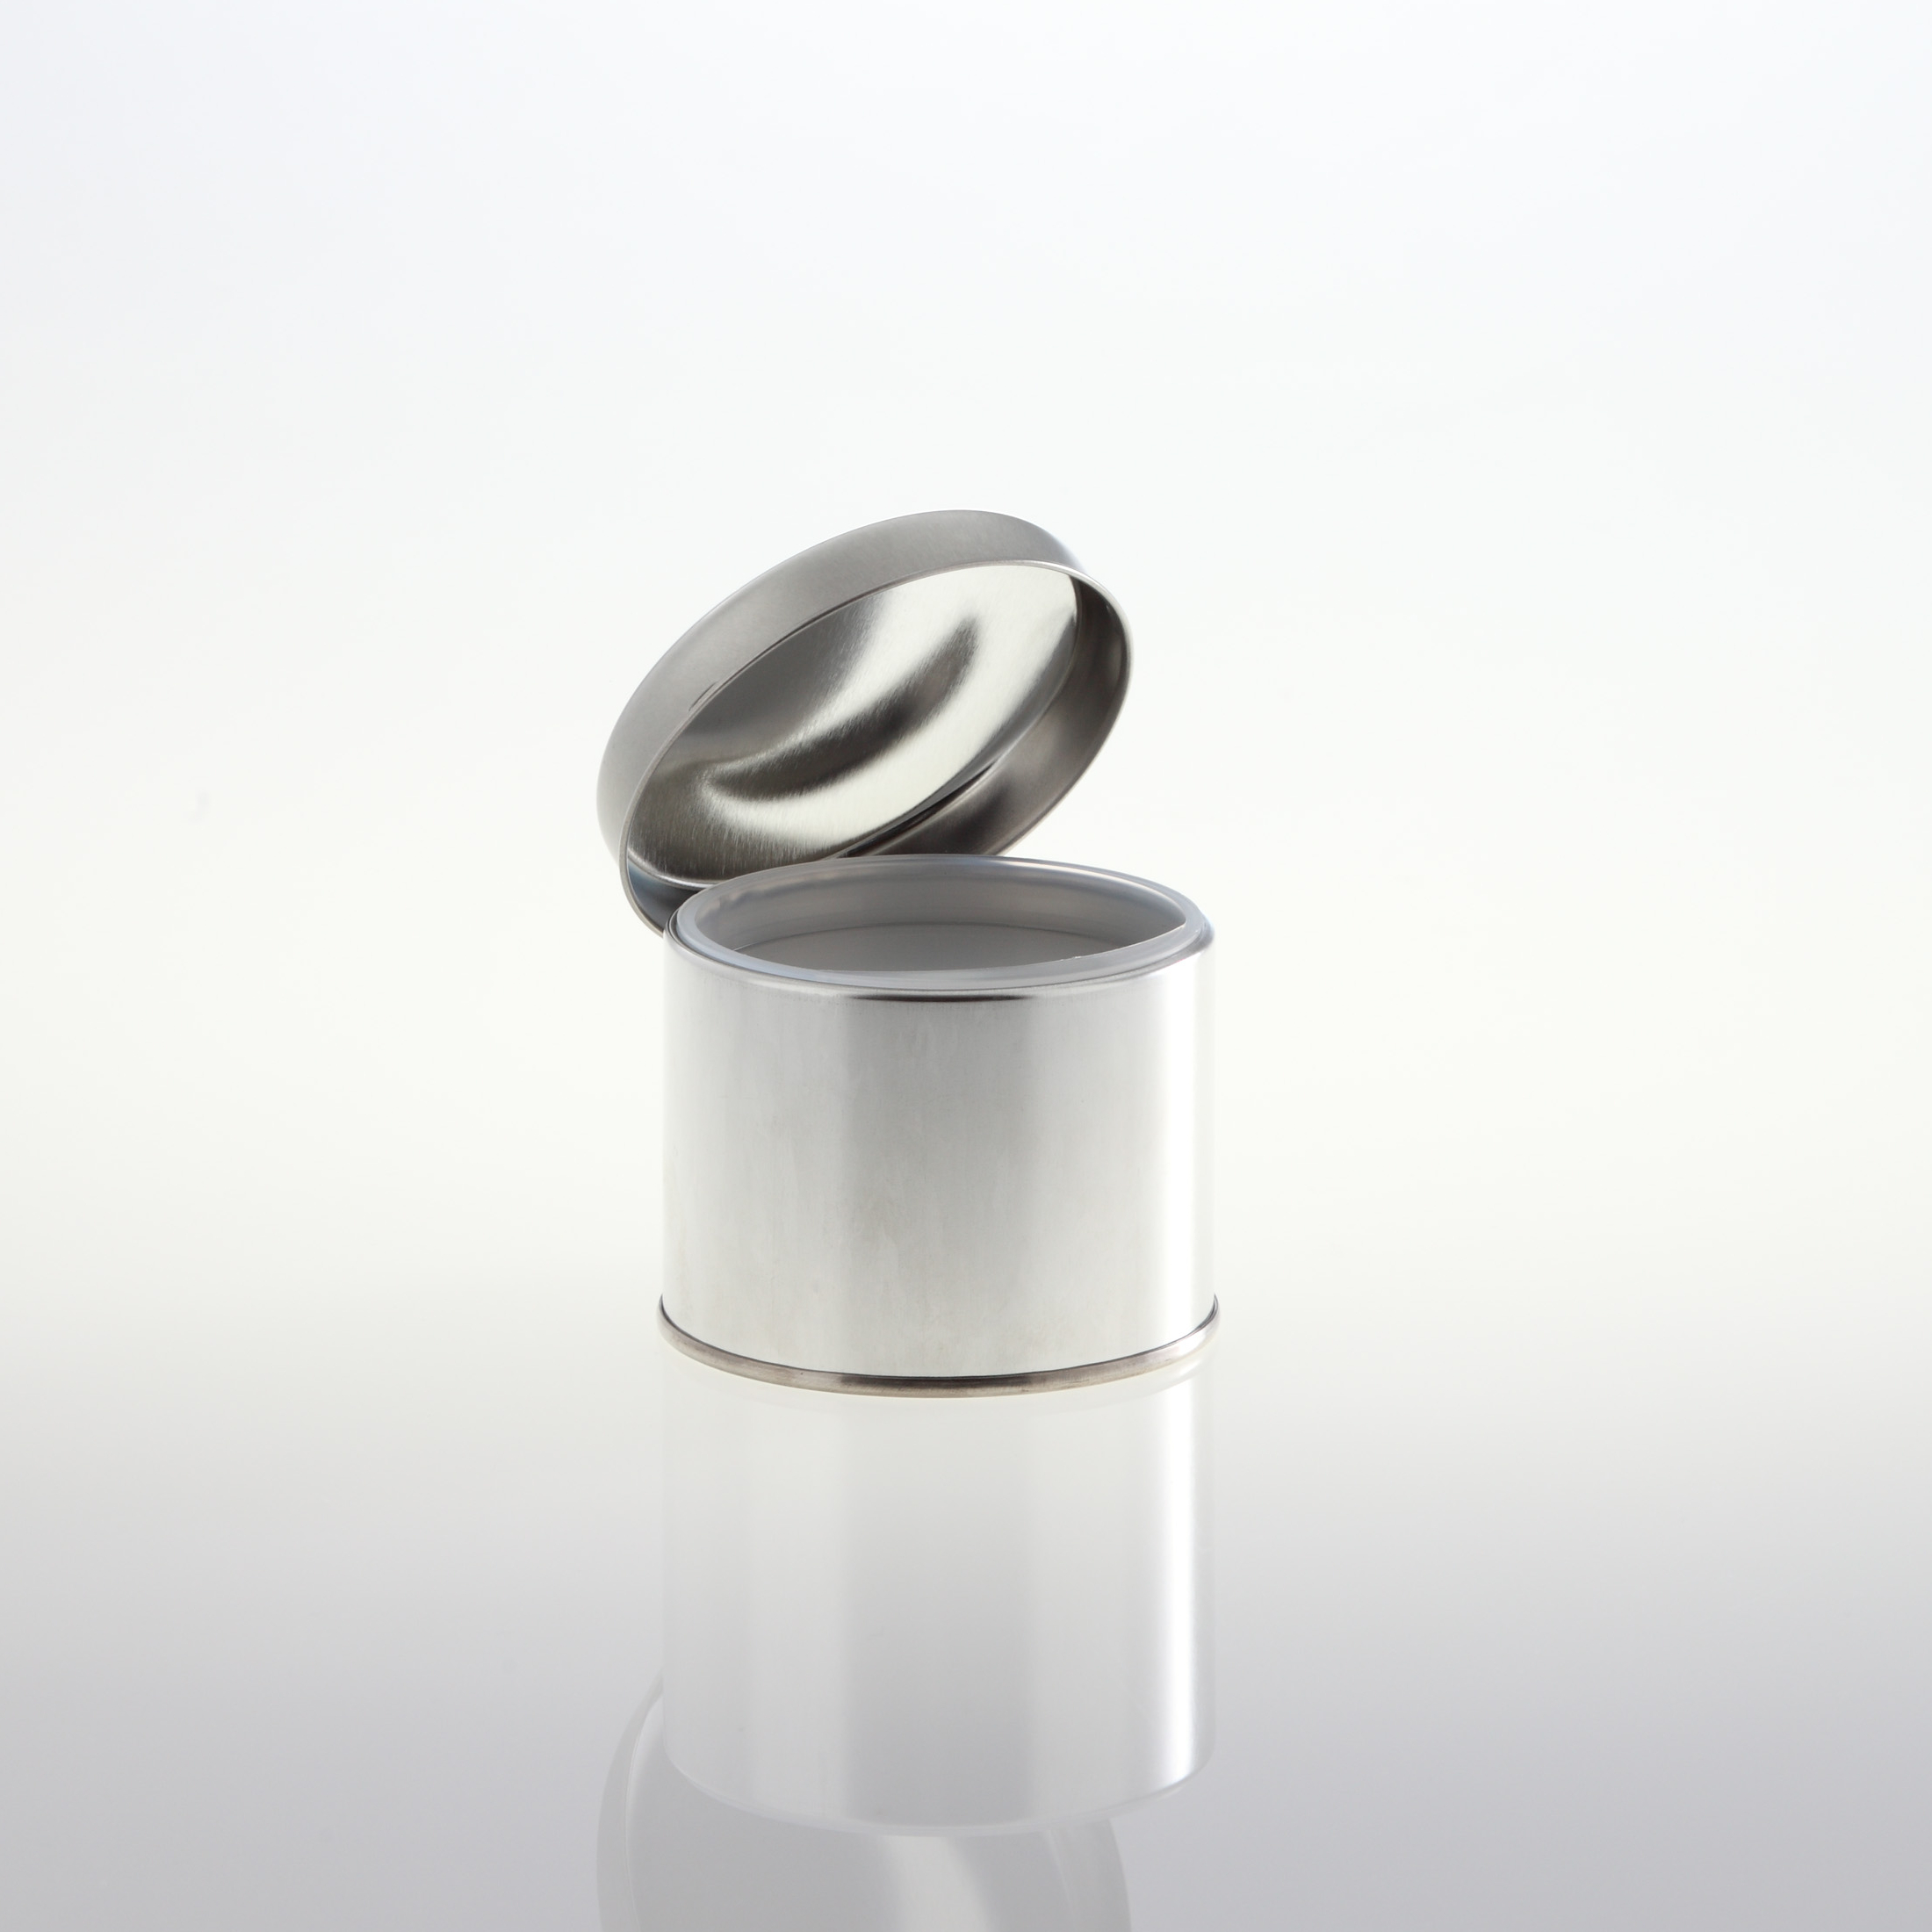 Aroma-Can 73/55 silver 200 ml